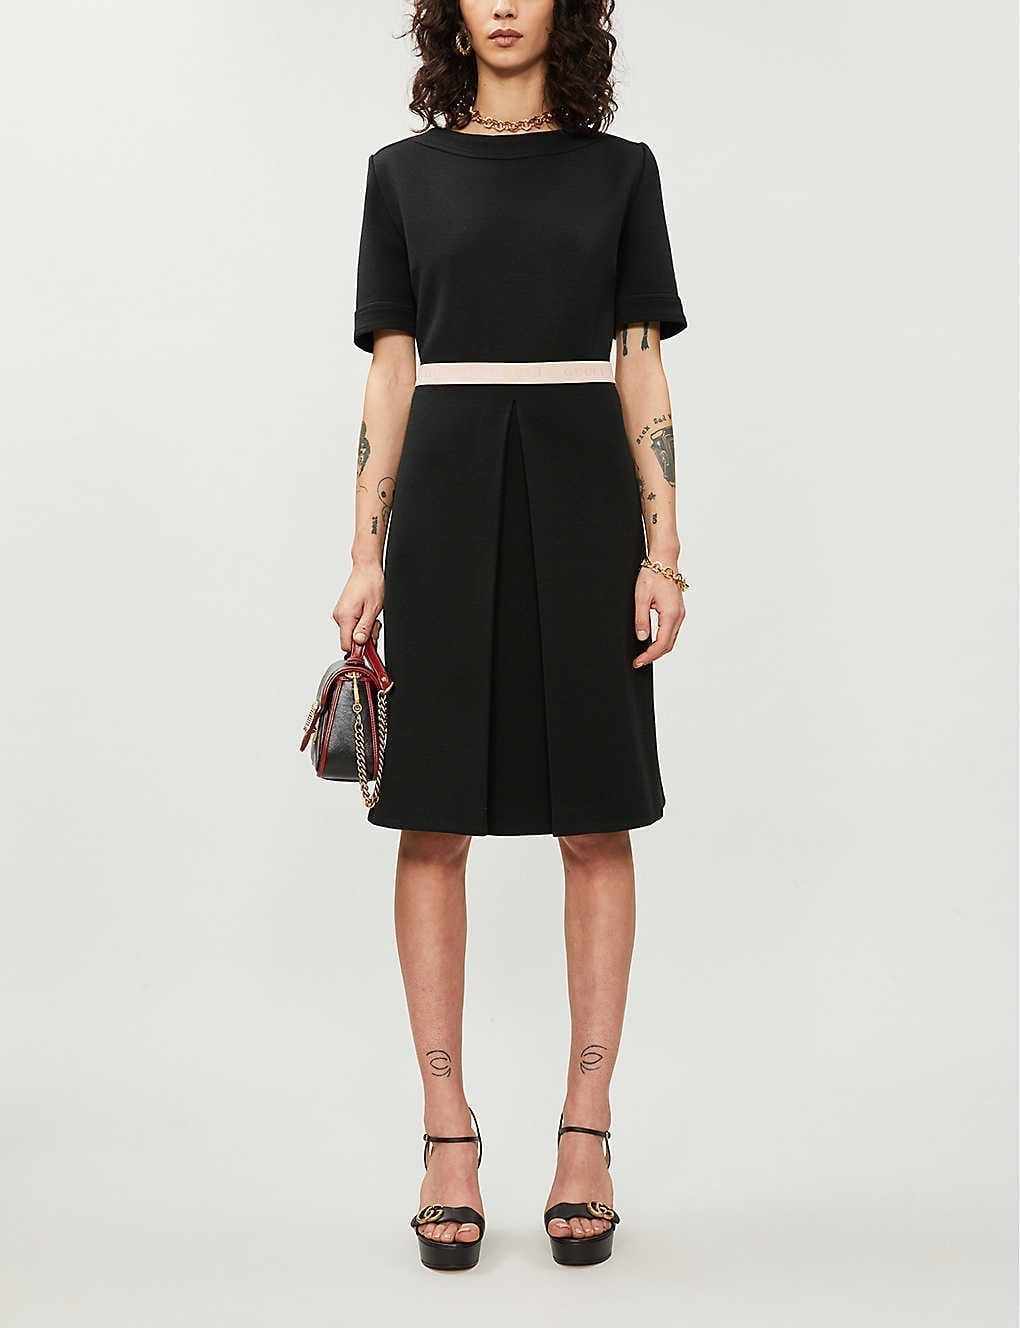 GUCCI Branded-waistband Wool-blend Mini Dress